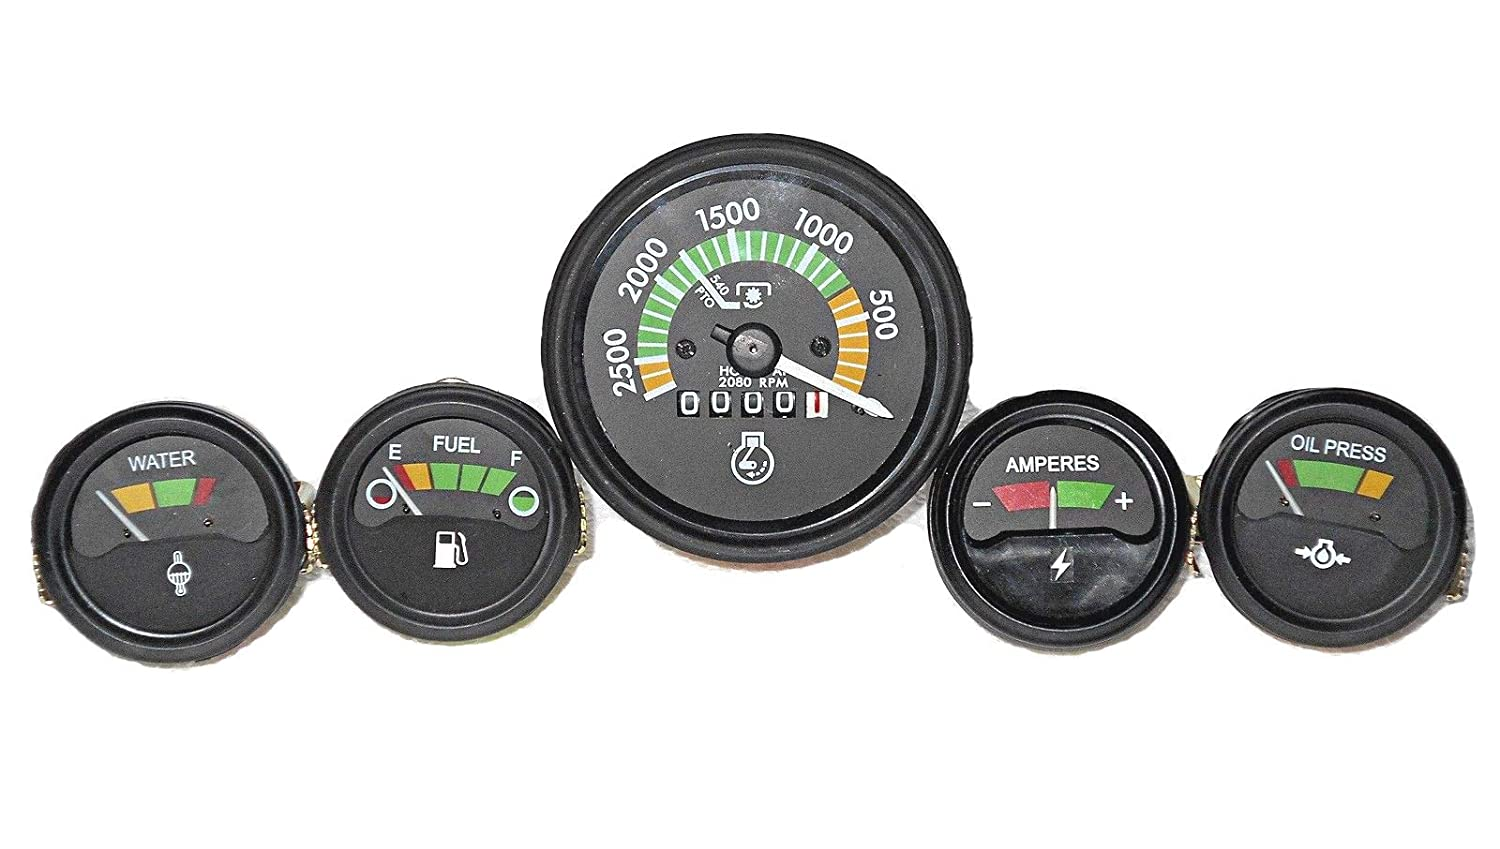 Temp+Oil+Fuel+Amp MF Massey Ferguson 265 285 Tractor Gauges Kit